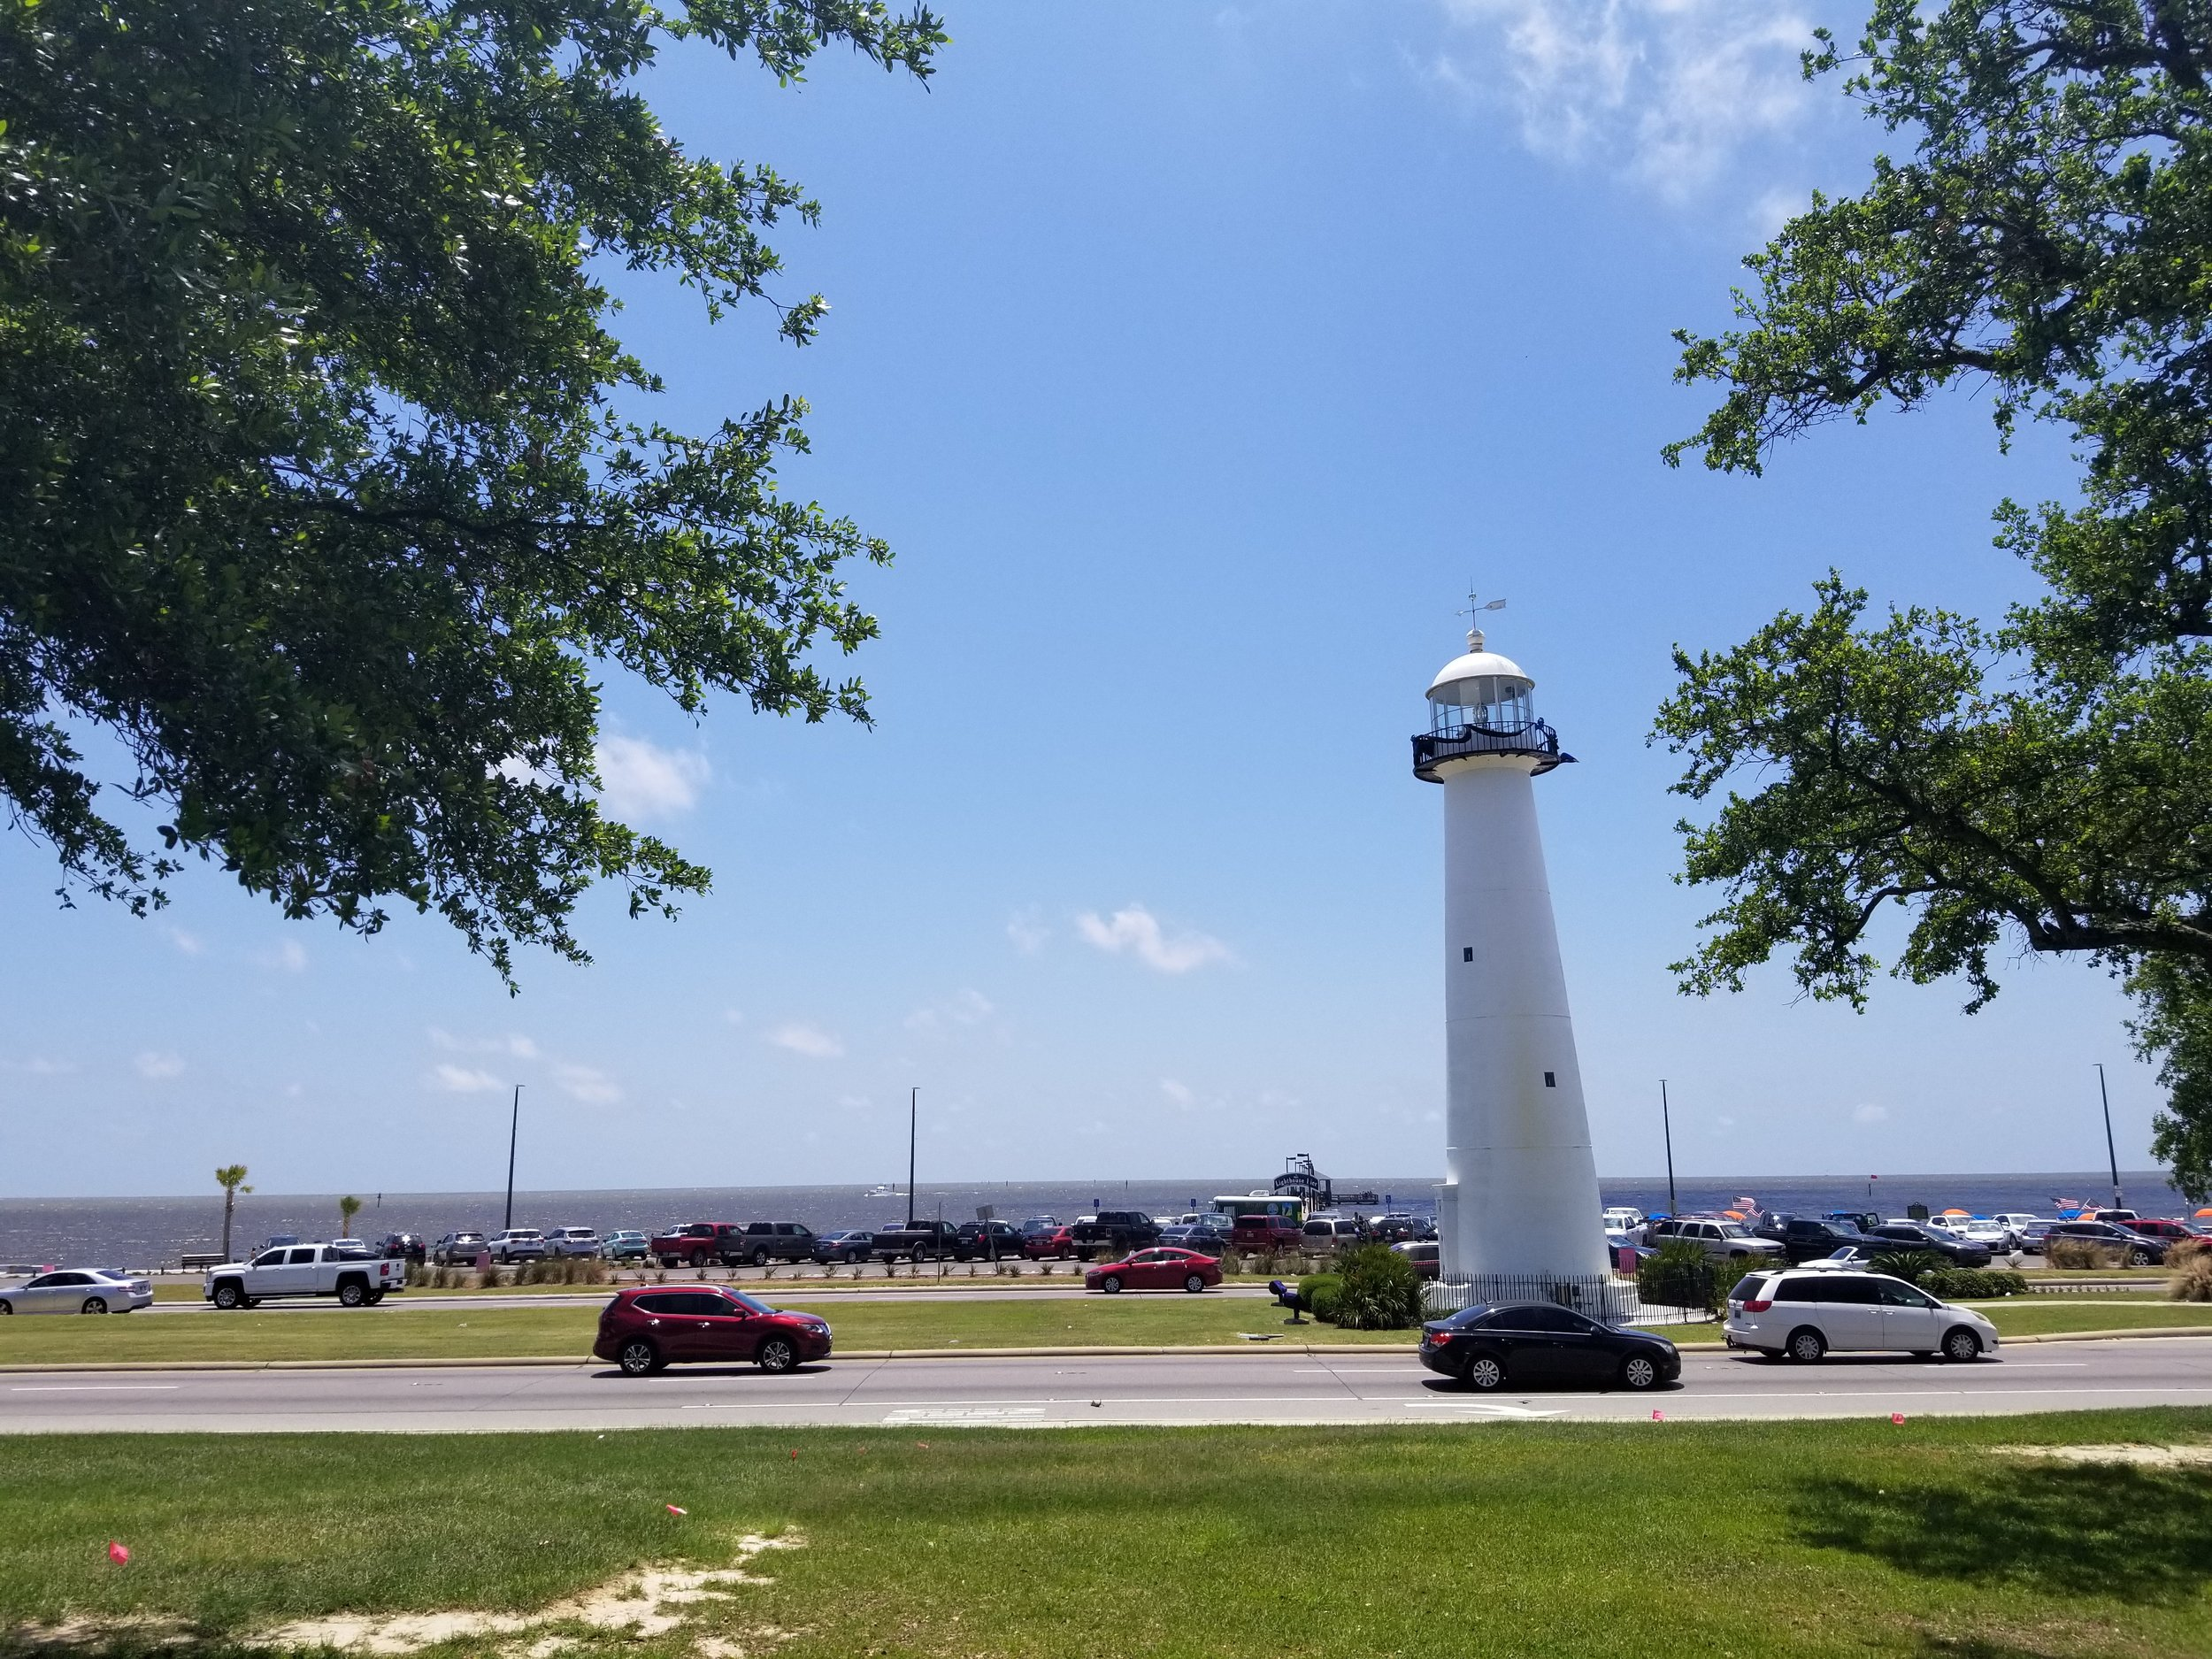 """""""The  Biloxi Lighthouse  was erected in 1848 and was one of the first cast-iron lighthouses in the South… The lighthouse has withstood many storms over the years. Katrina's storm surge enveloped a third of the 64-foot tall lighthouse, and the constant pounding from the water and winds toppled many bricks that lined the interior of the cast iron tower. The storm's winds also broke many of the windows in the light cupola and destroyed the structure's electrical system."""""""